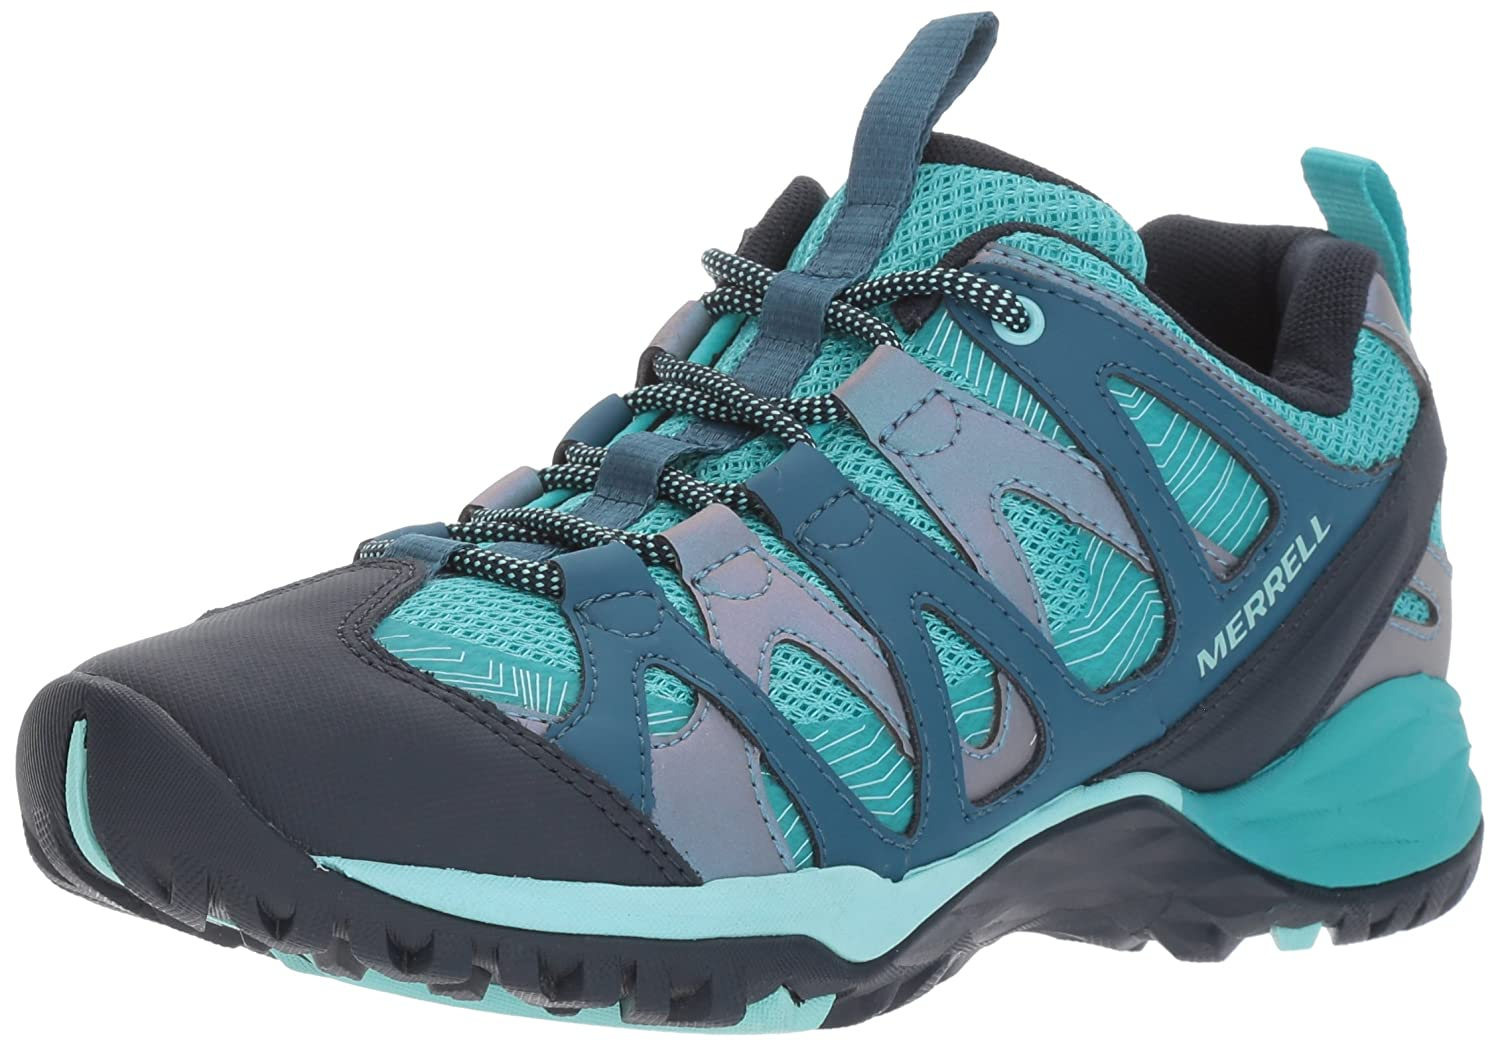 Merrell Women's Siren Hex Hiking Shoe B01MTC4IDE 10 B(M) US|Baltic